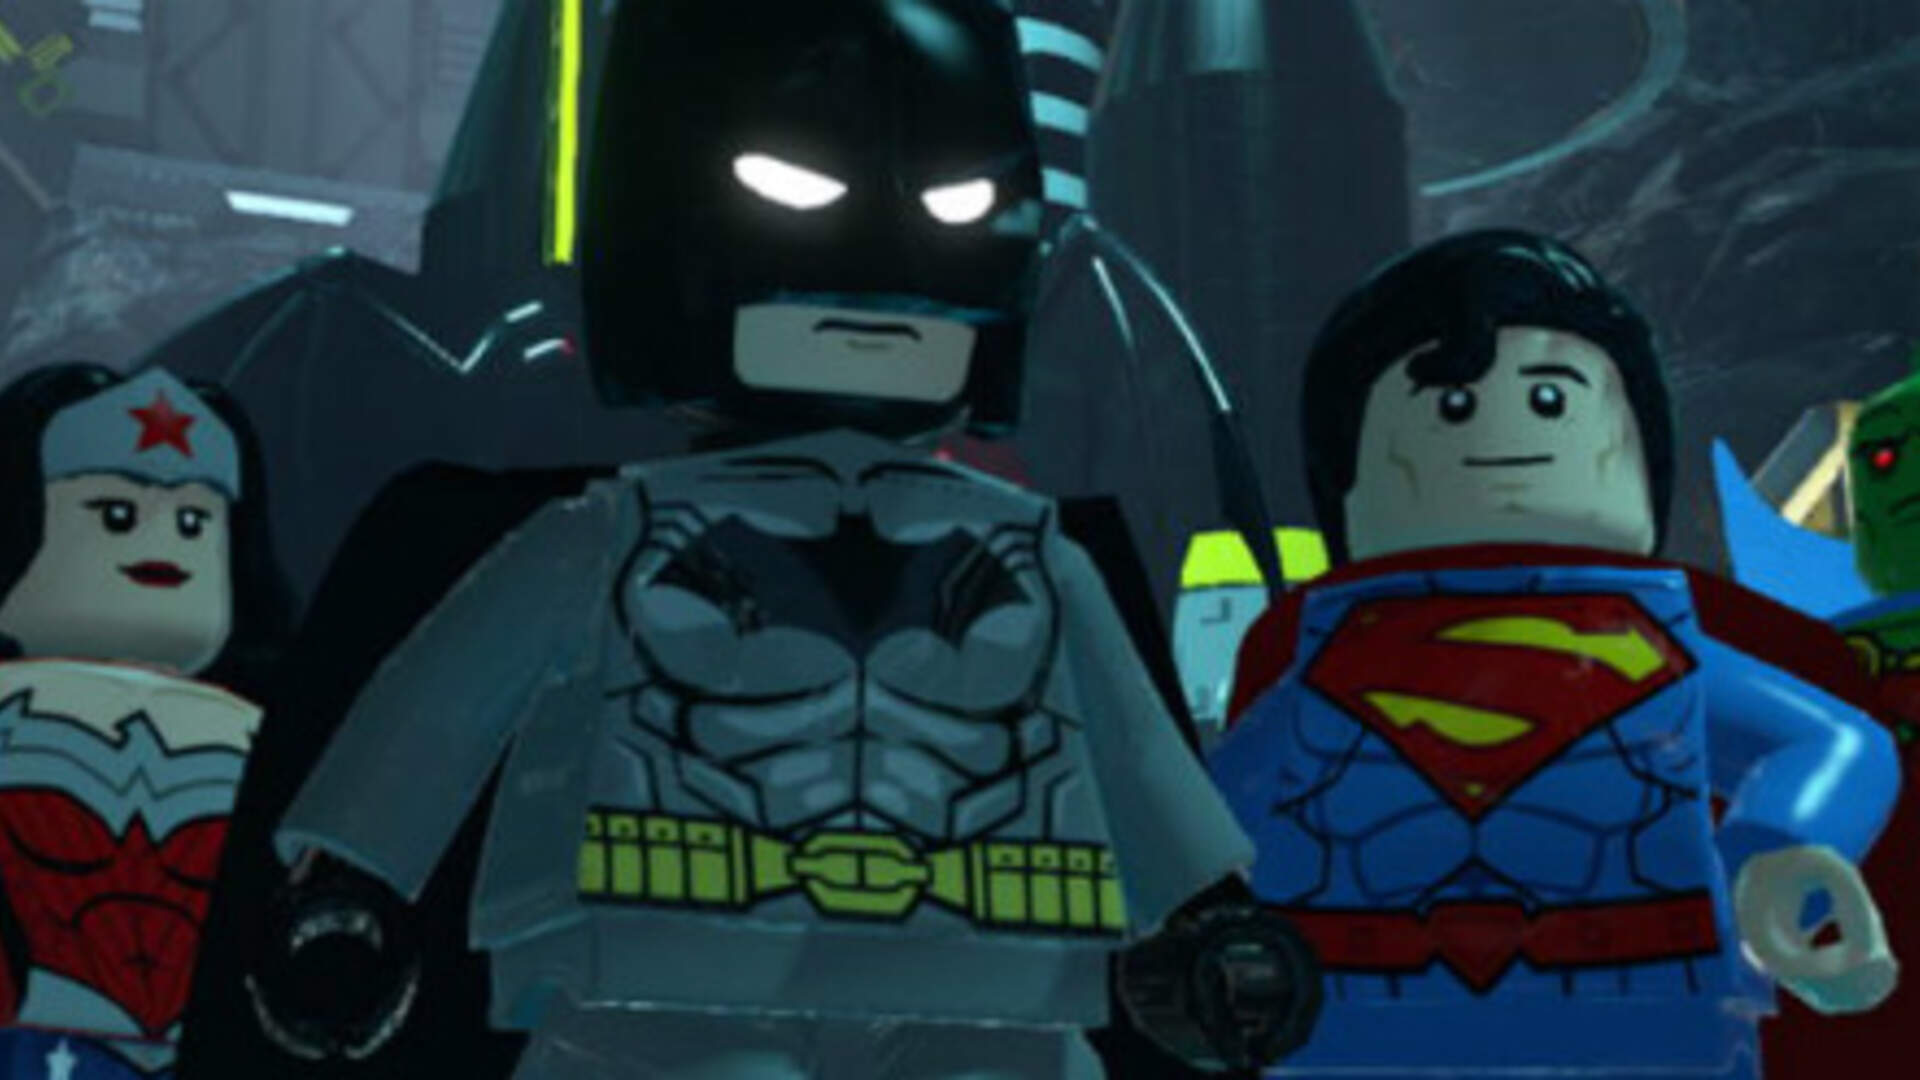 Lego Batman 3 Codes And Cheats Lego Batman 3 Beyond Gotham Usgamer